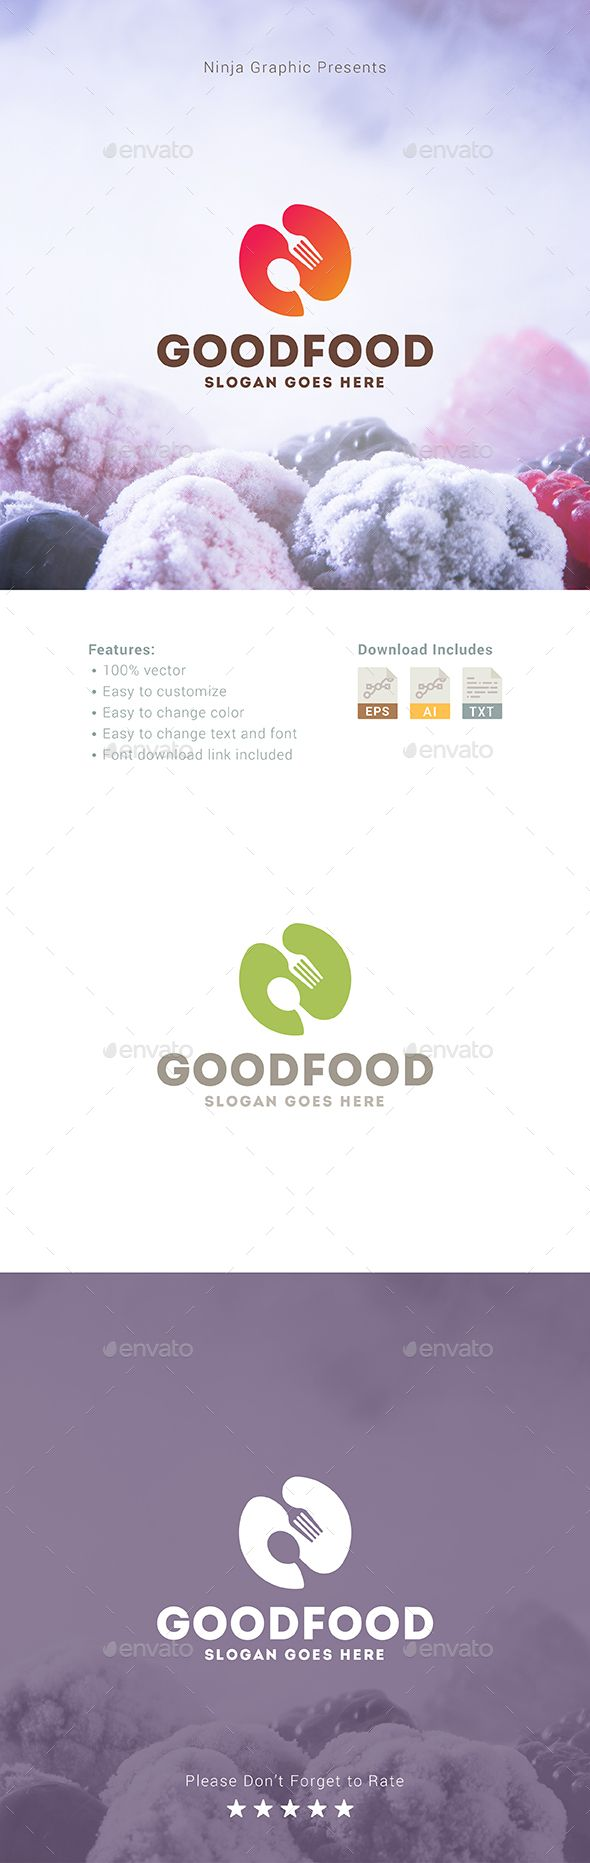 Restaurant logos and names related keywords amp suggestions restaurant - Good Food Logo